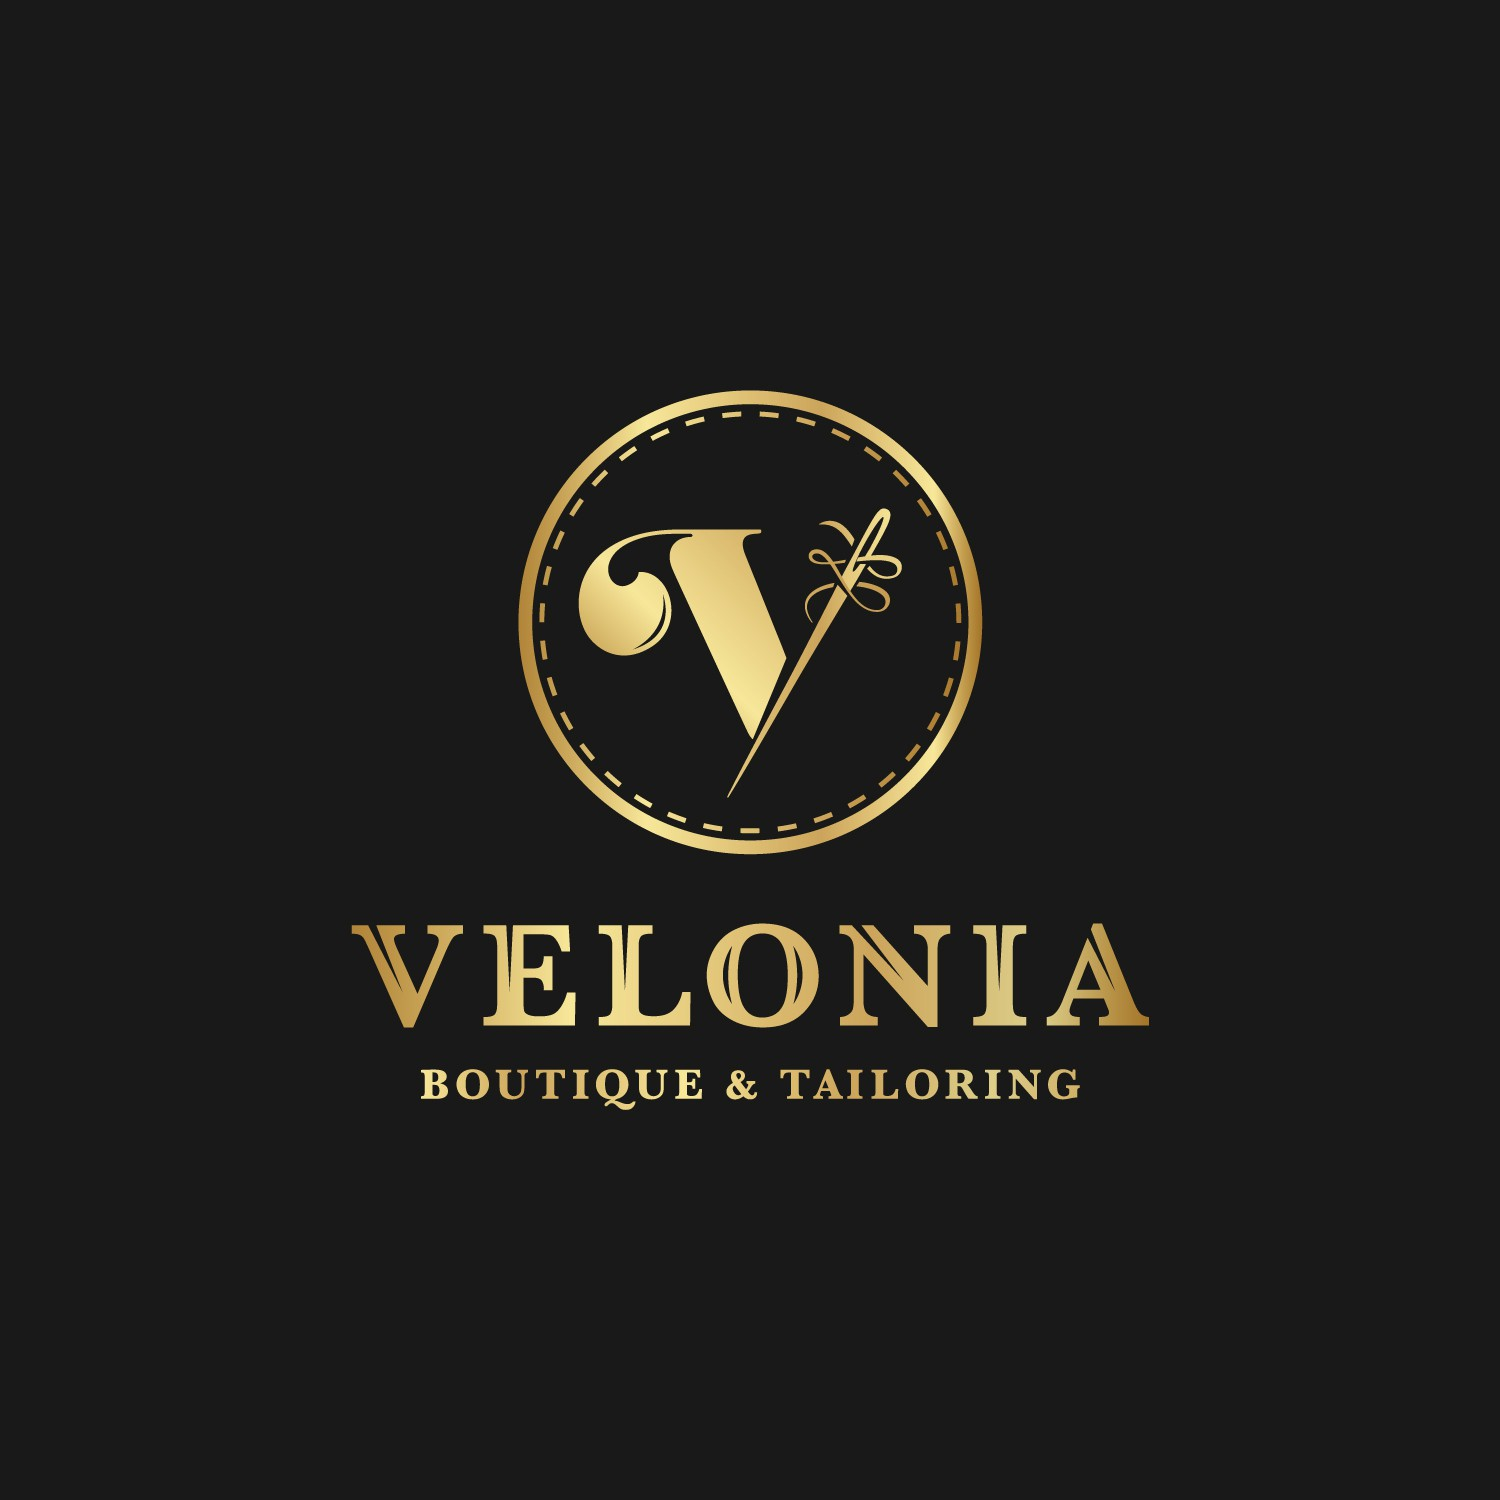 create a logo that will communicate high quality & luxury.